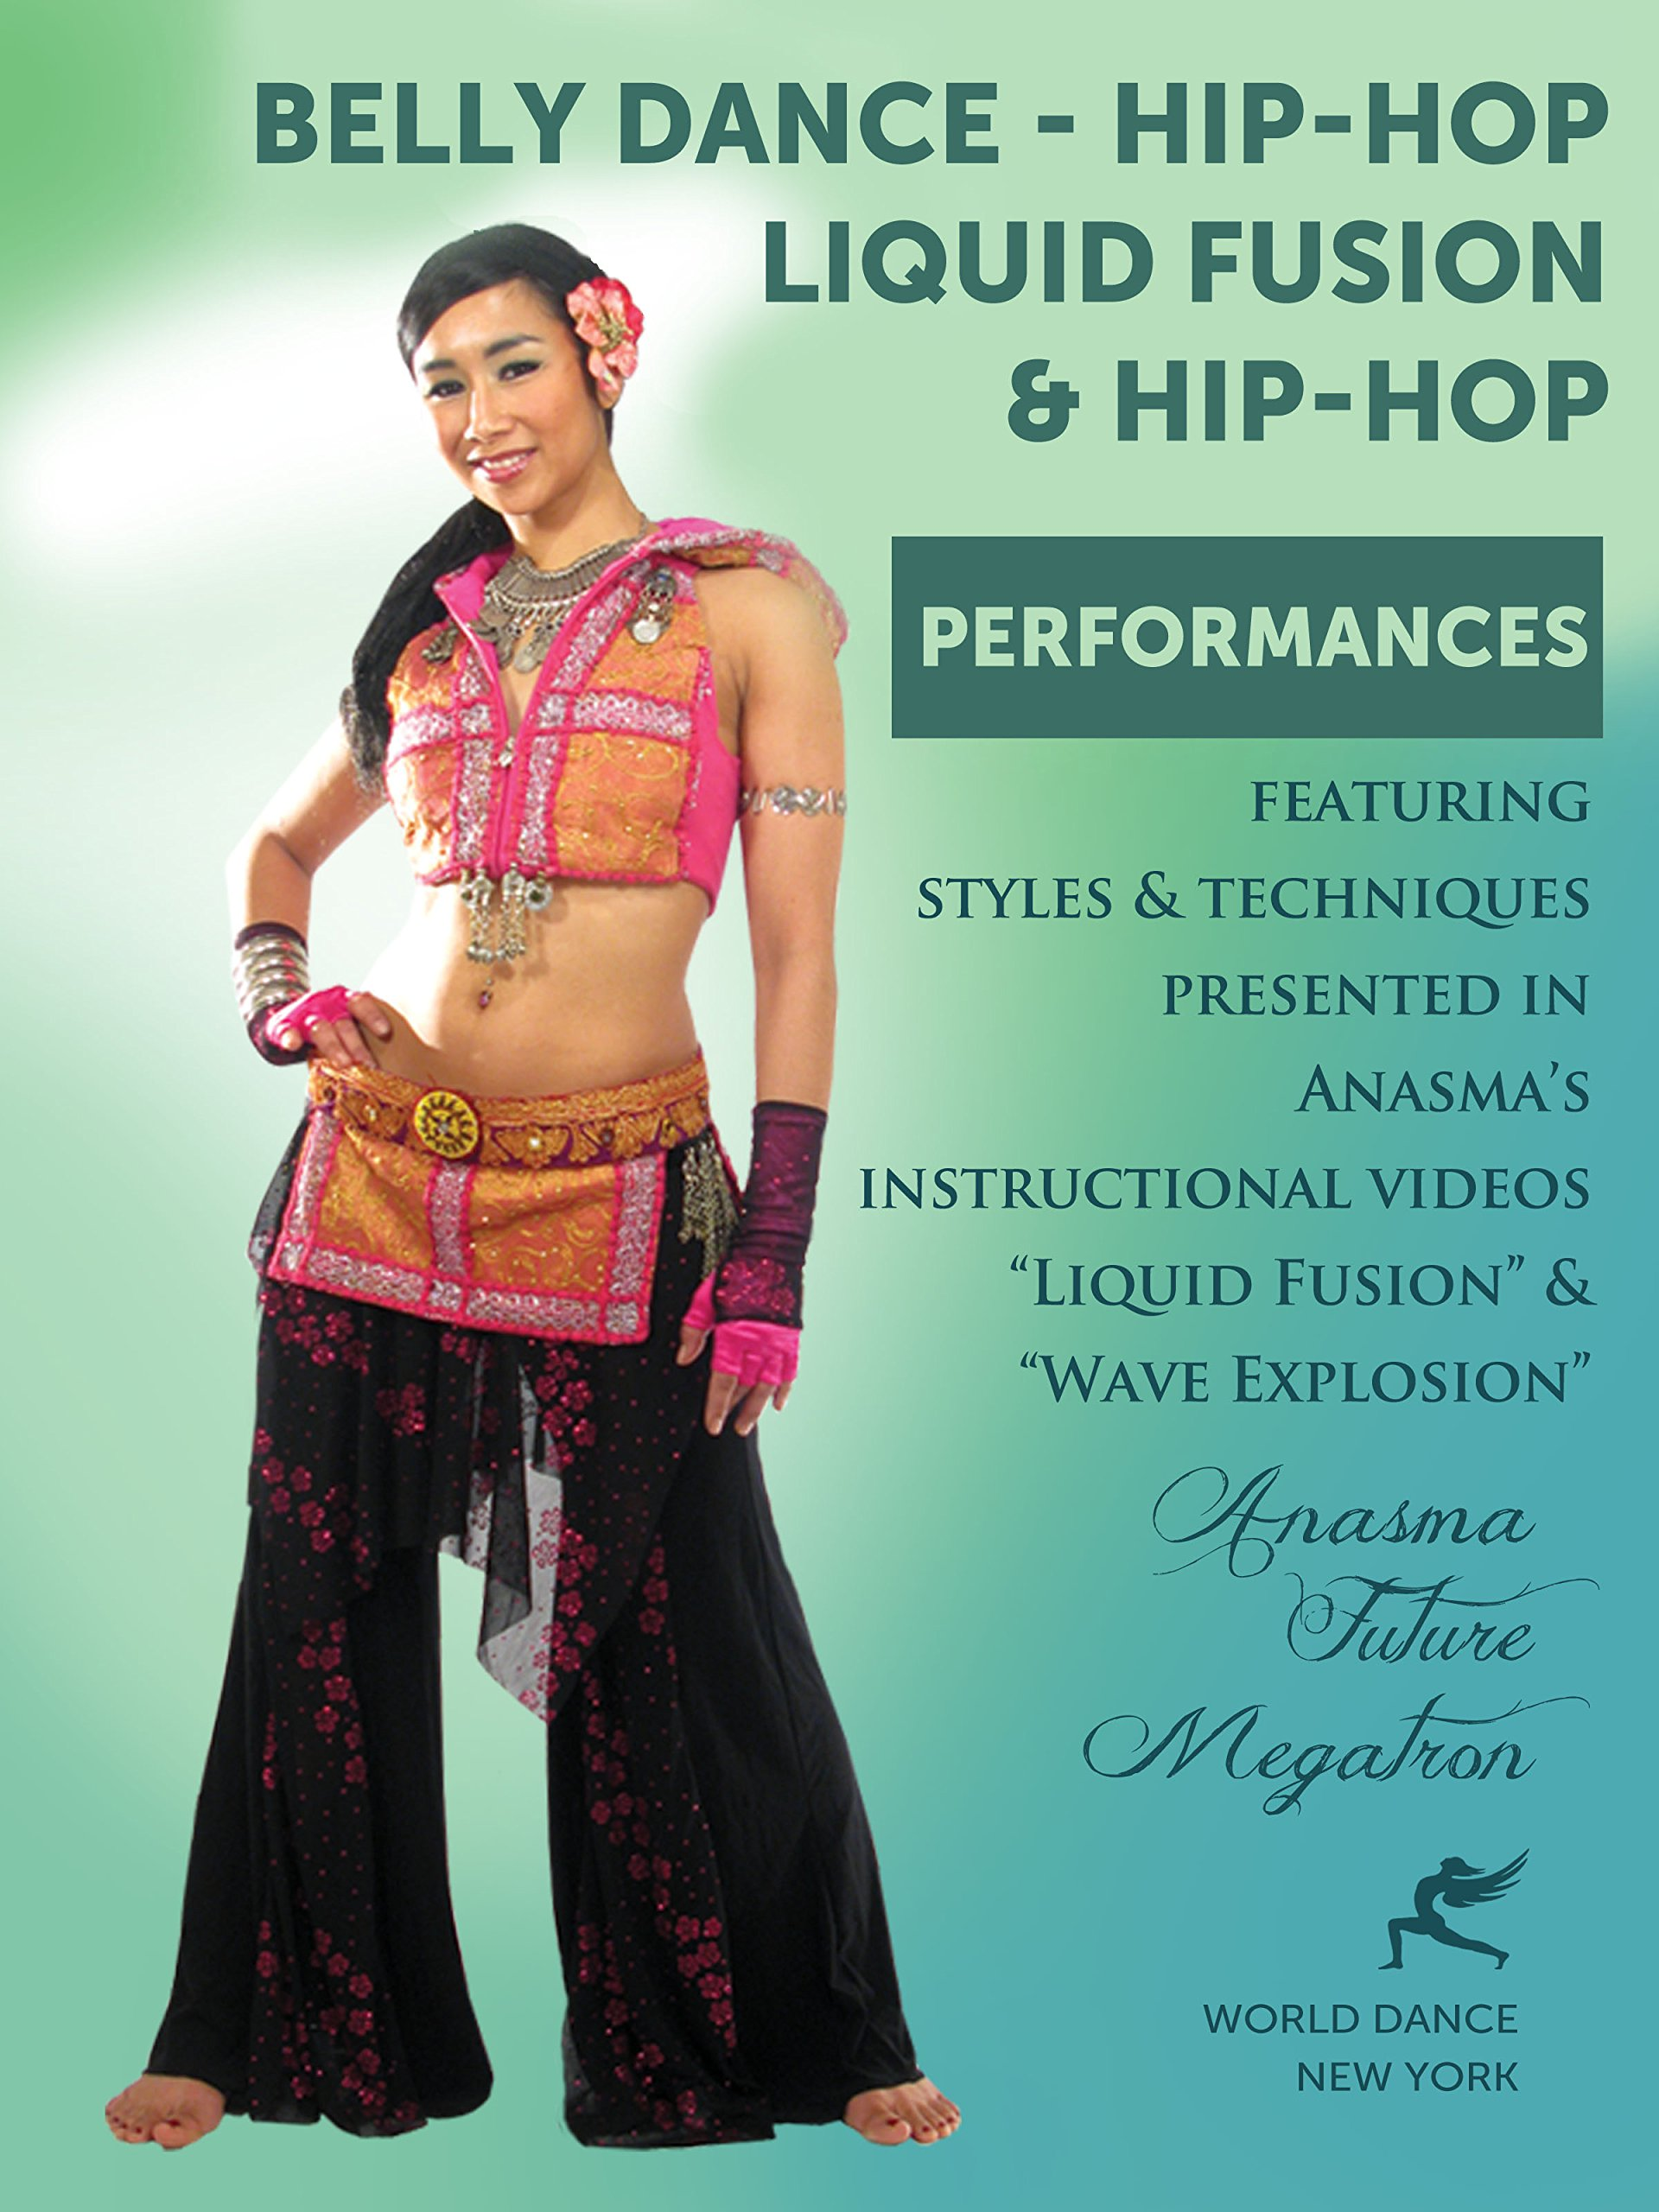 Belly Dance - Hip-Hop Liquid Fusion & Hip-Hop Performances